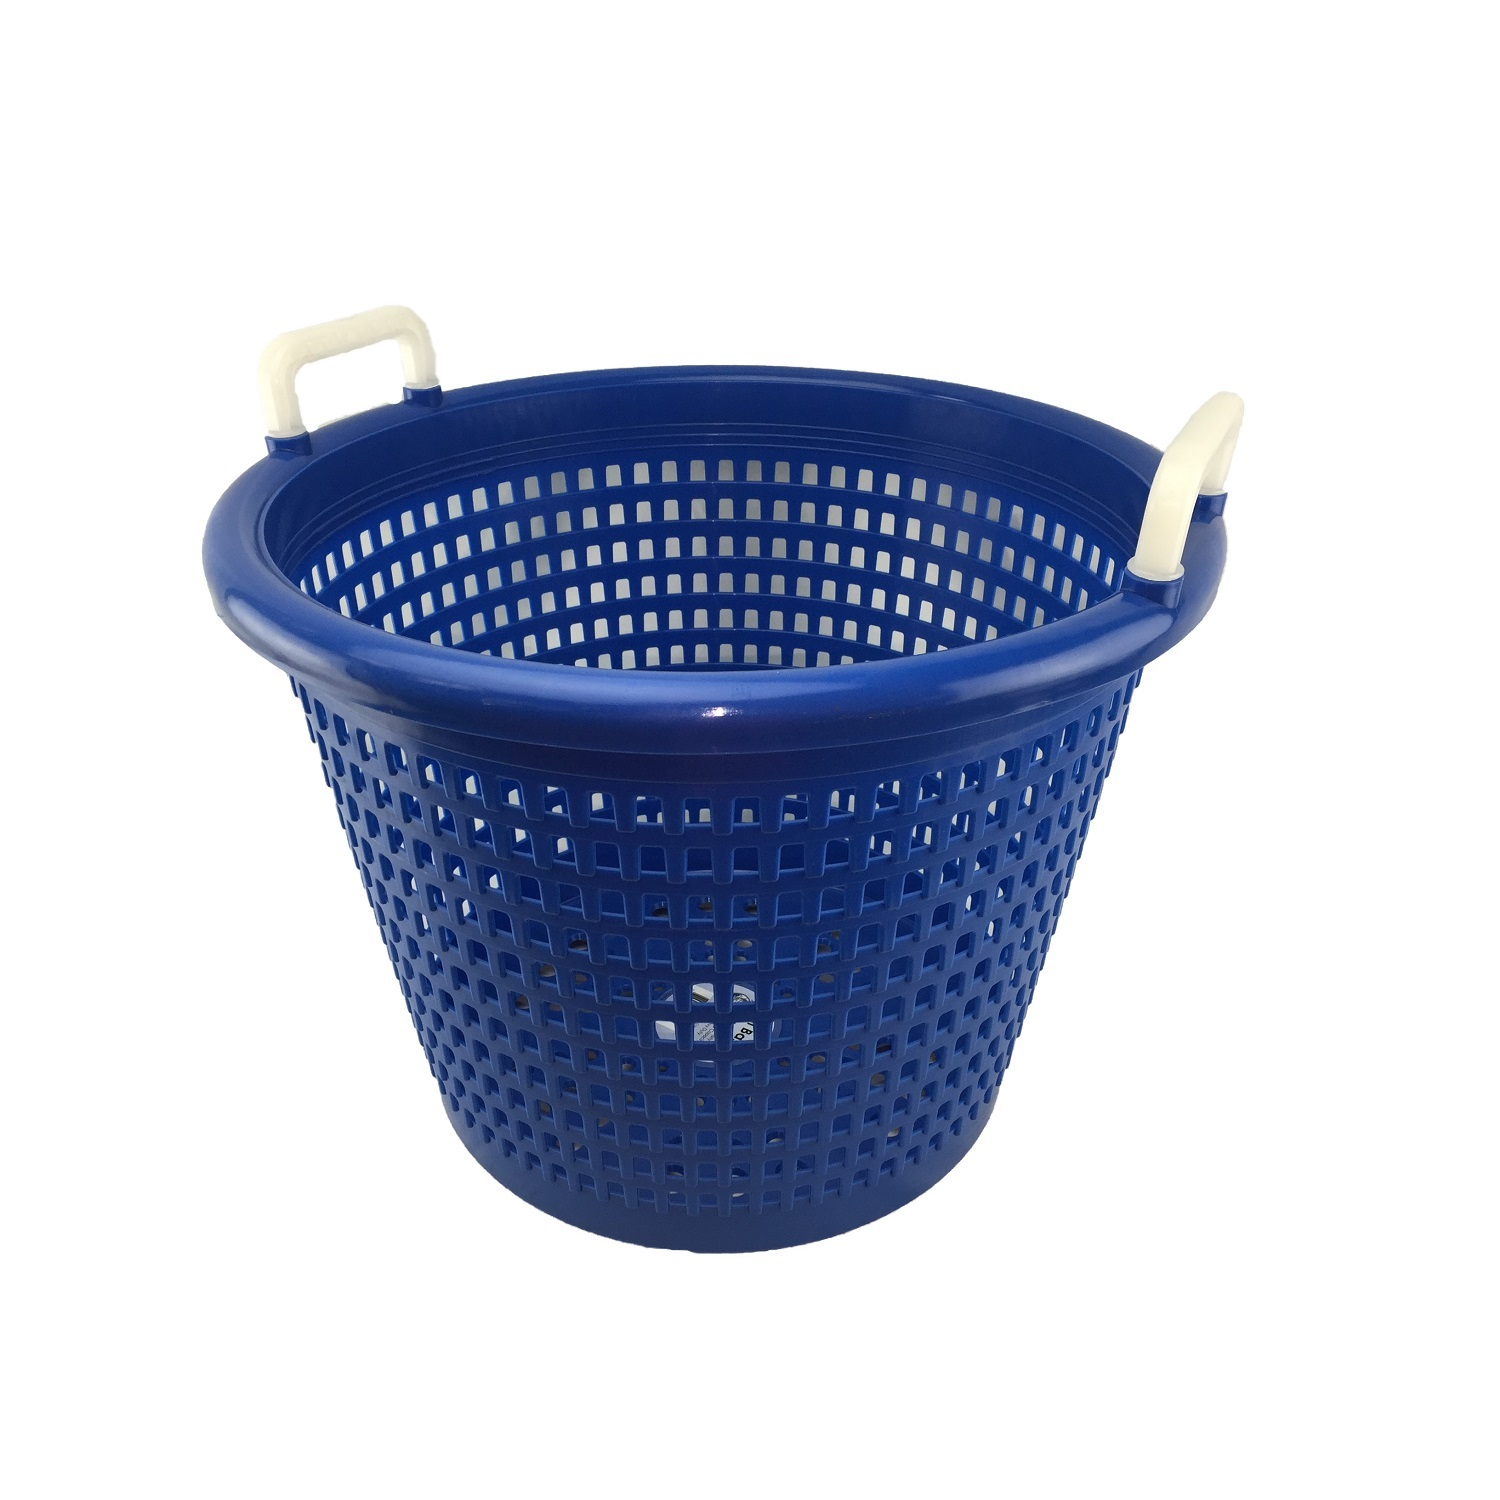 Lee Fisher Model# BASKET-FISH-BLUE